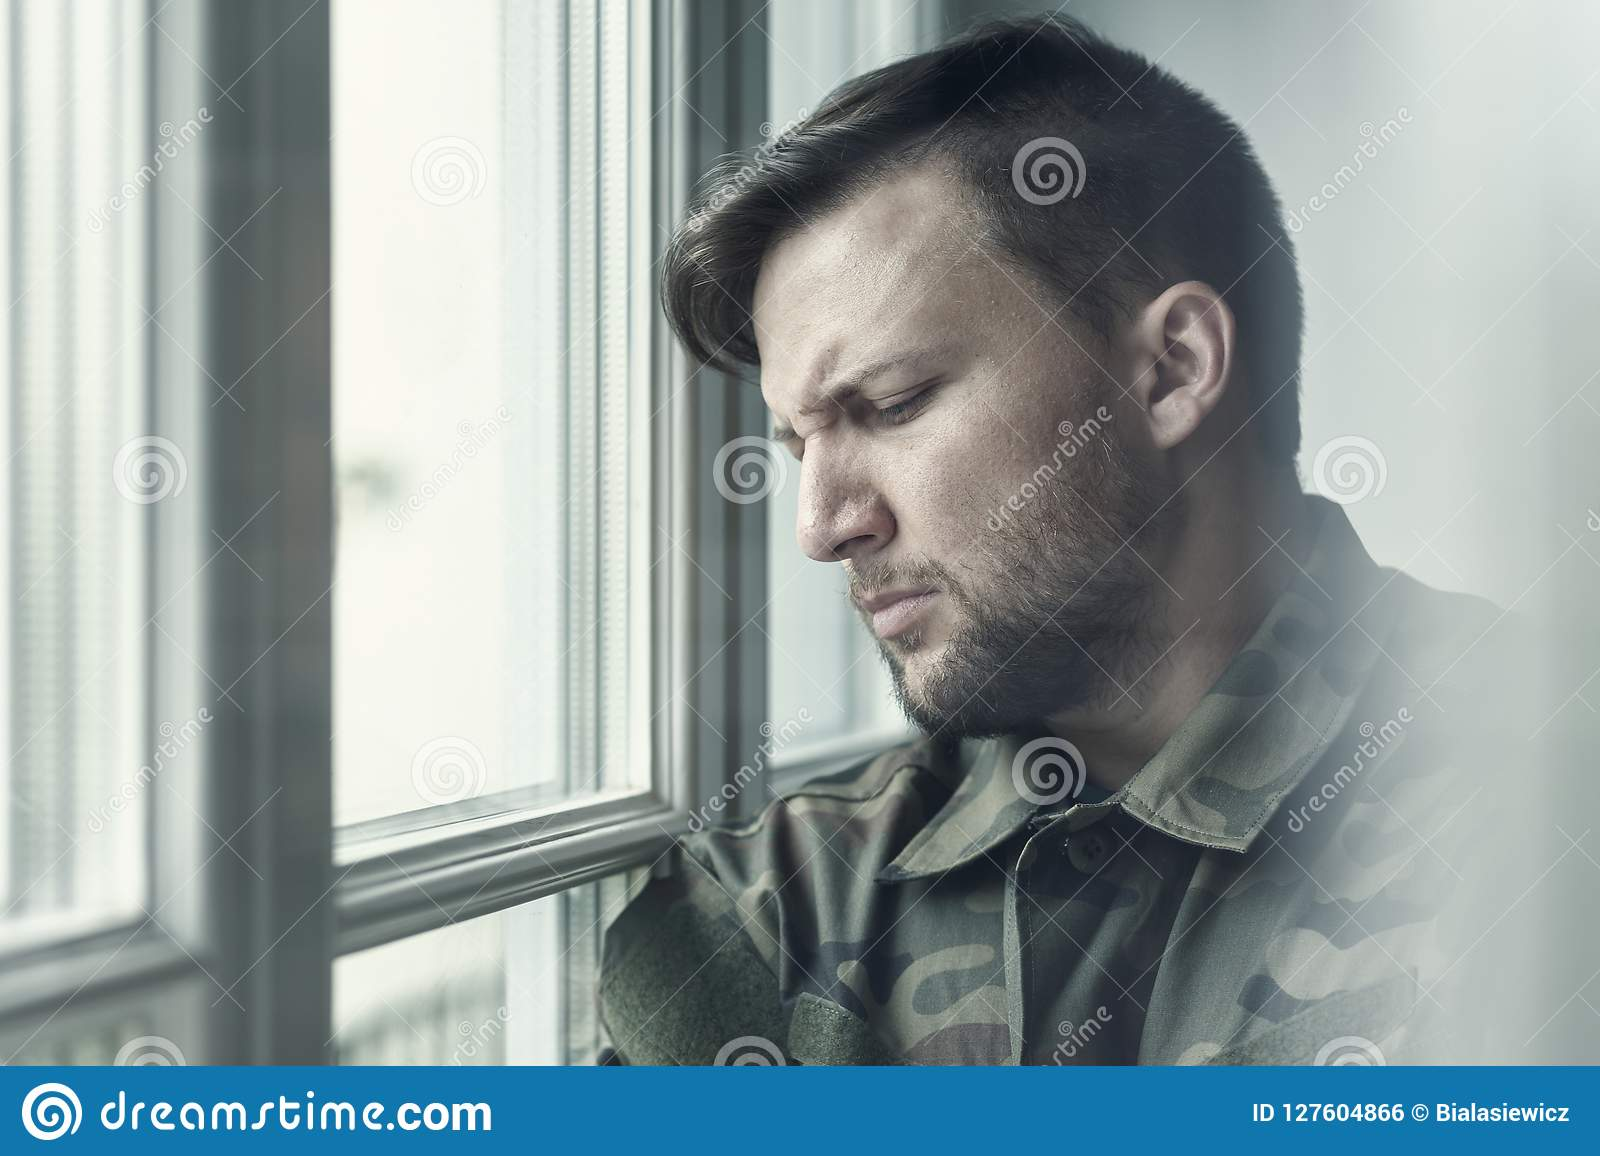 Sad and lonely soldier in depression after war with emotional problem